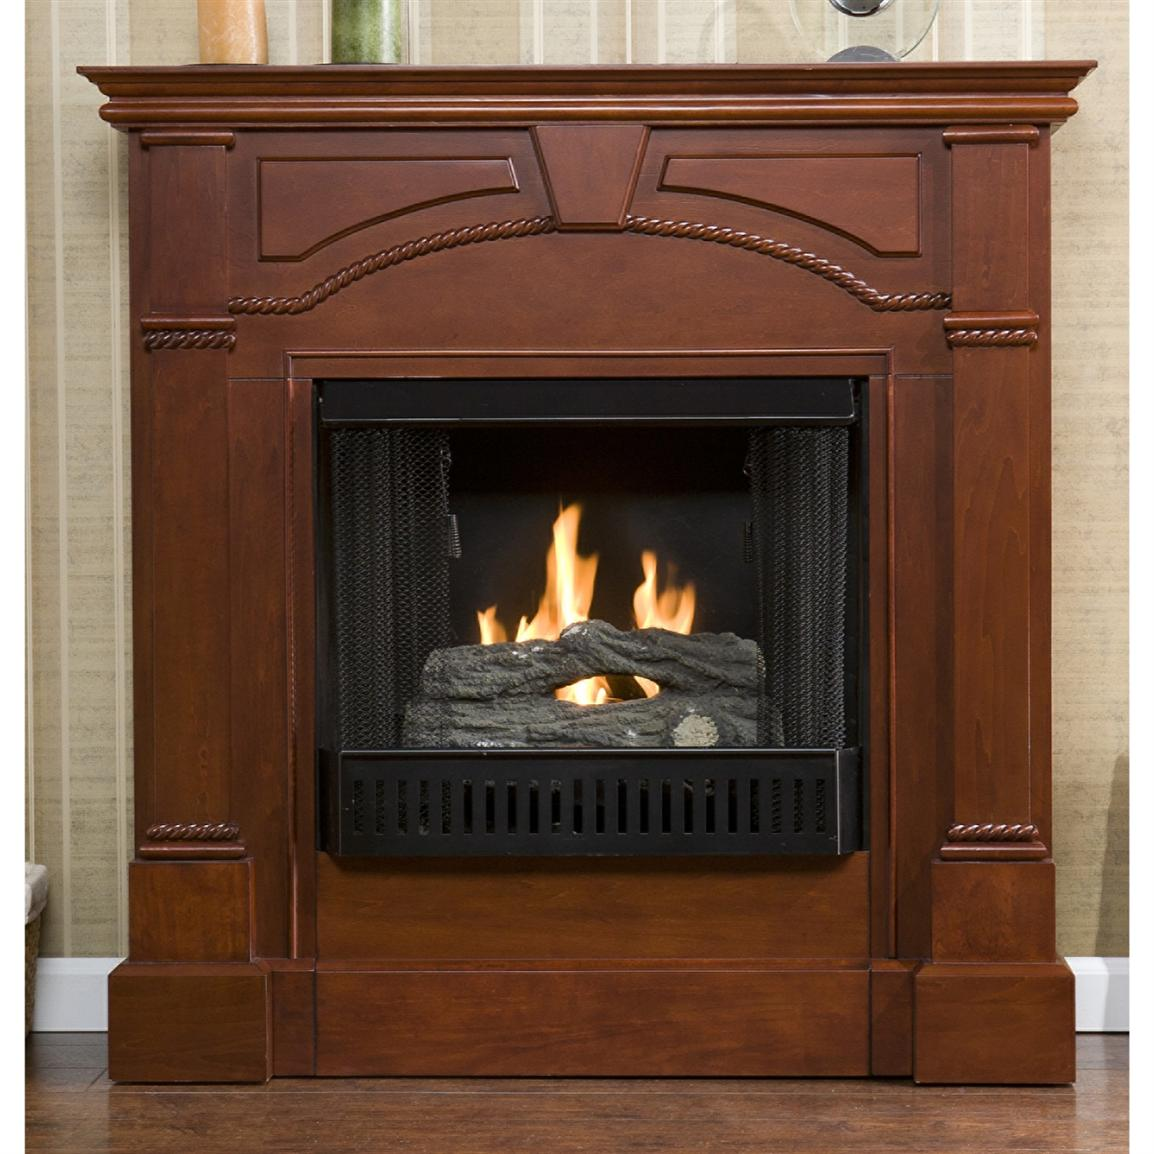 Southern Enterprises Inc Heritage Electric Fireplace 200948 Fireplaces At Sportsman 39 S Guide